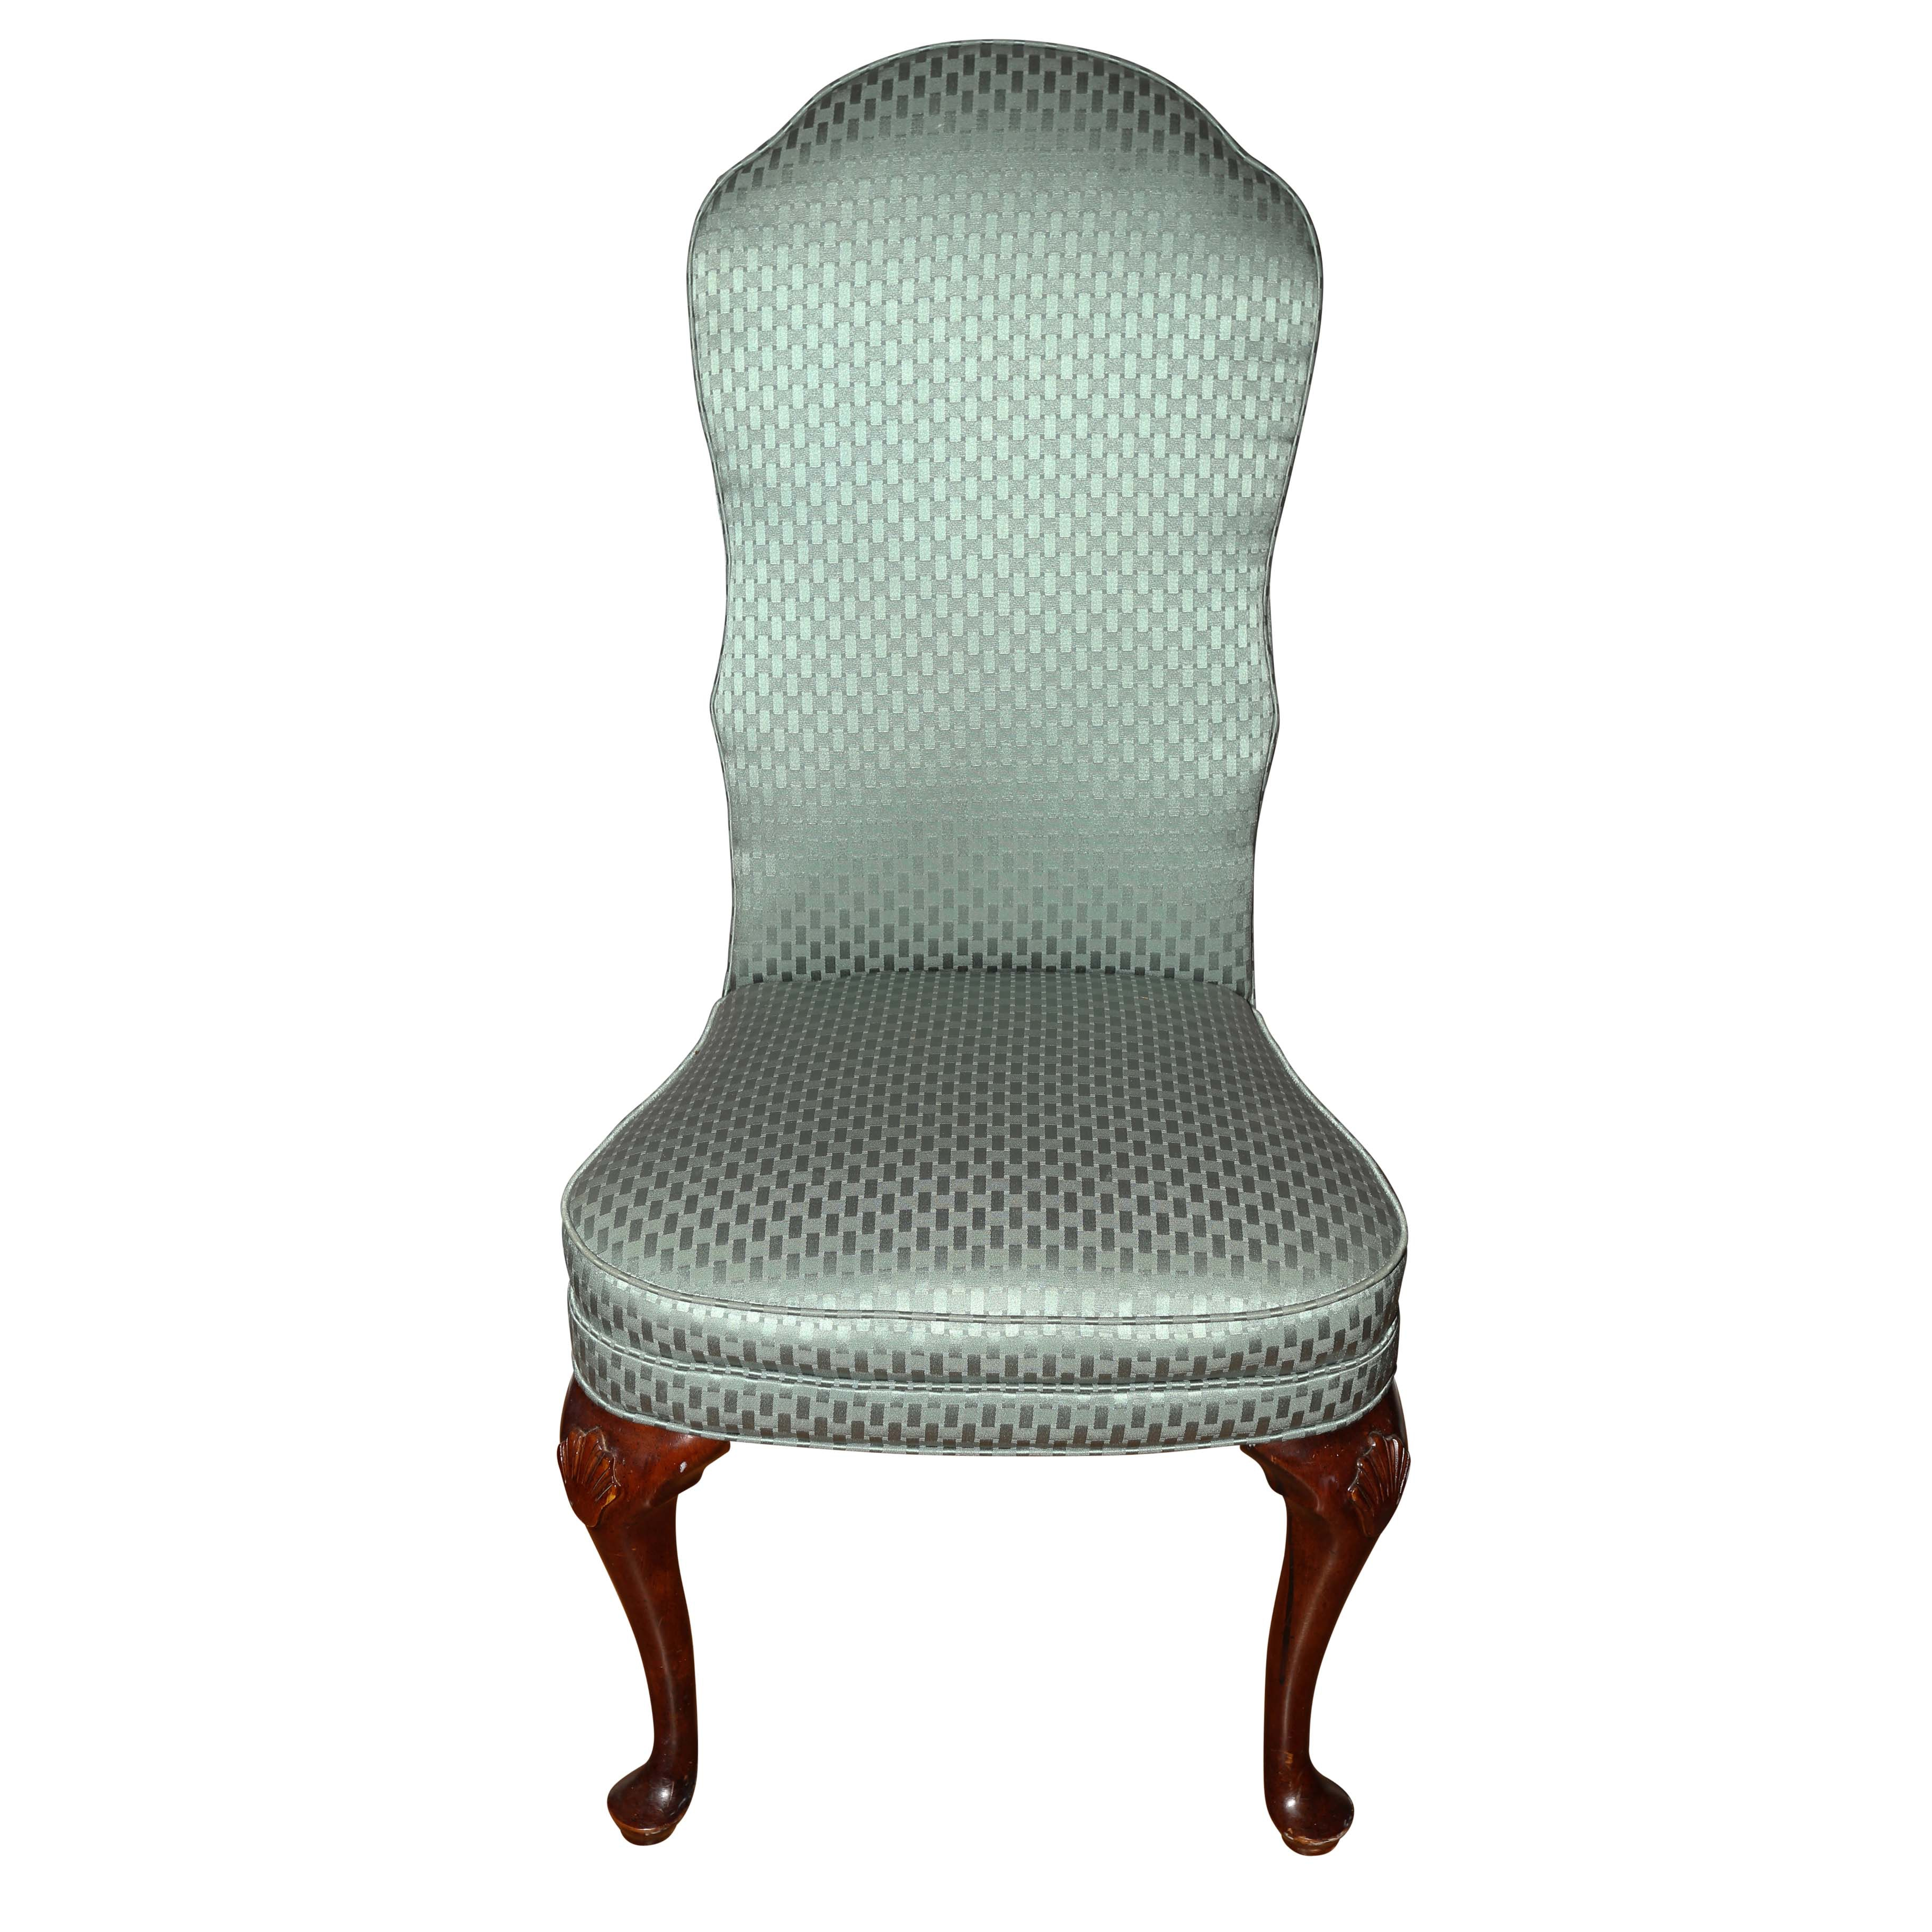 Upholstered Queen Anne Style Dining Chair